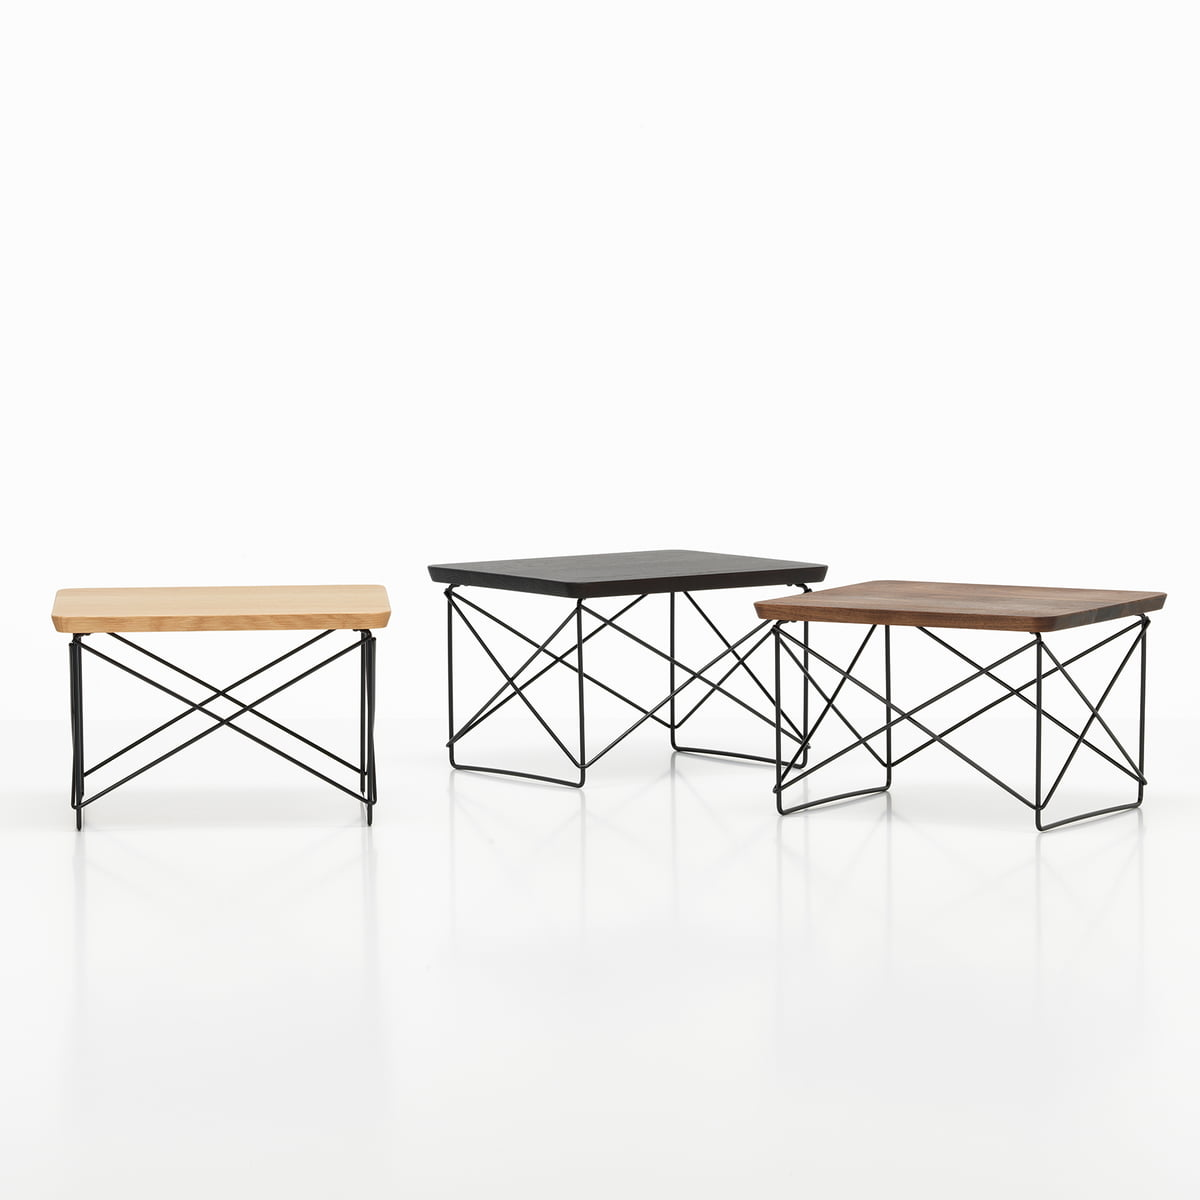 Eames occasional table ltr by vitra connox eames occasional table ltr by vitra greentooth Gallery